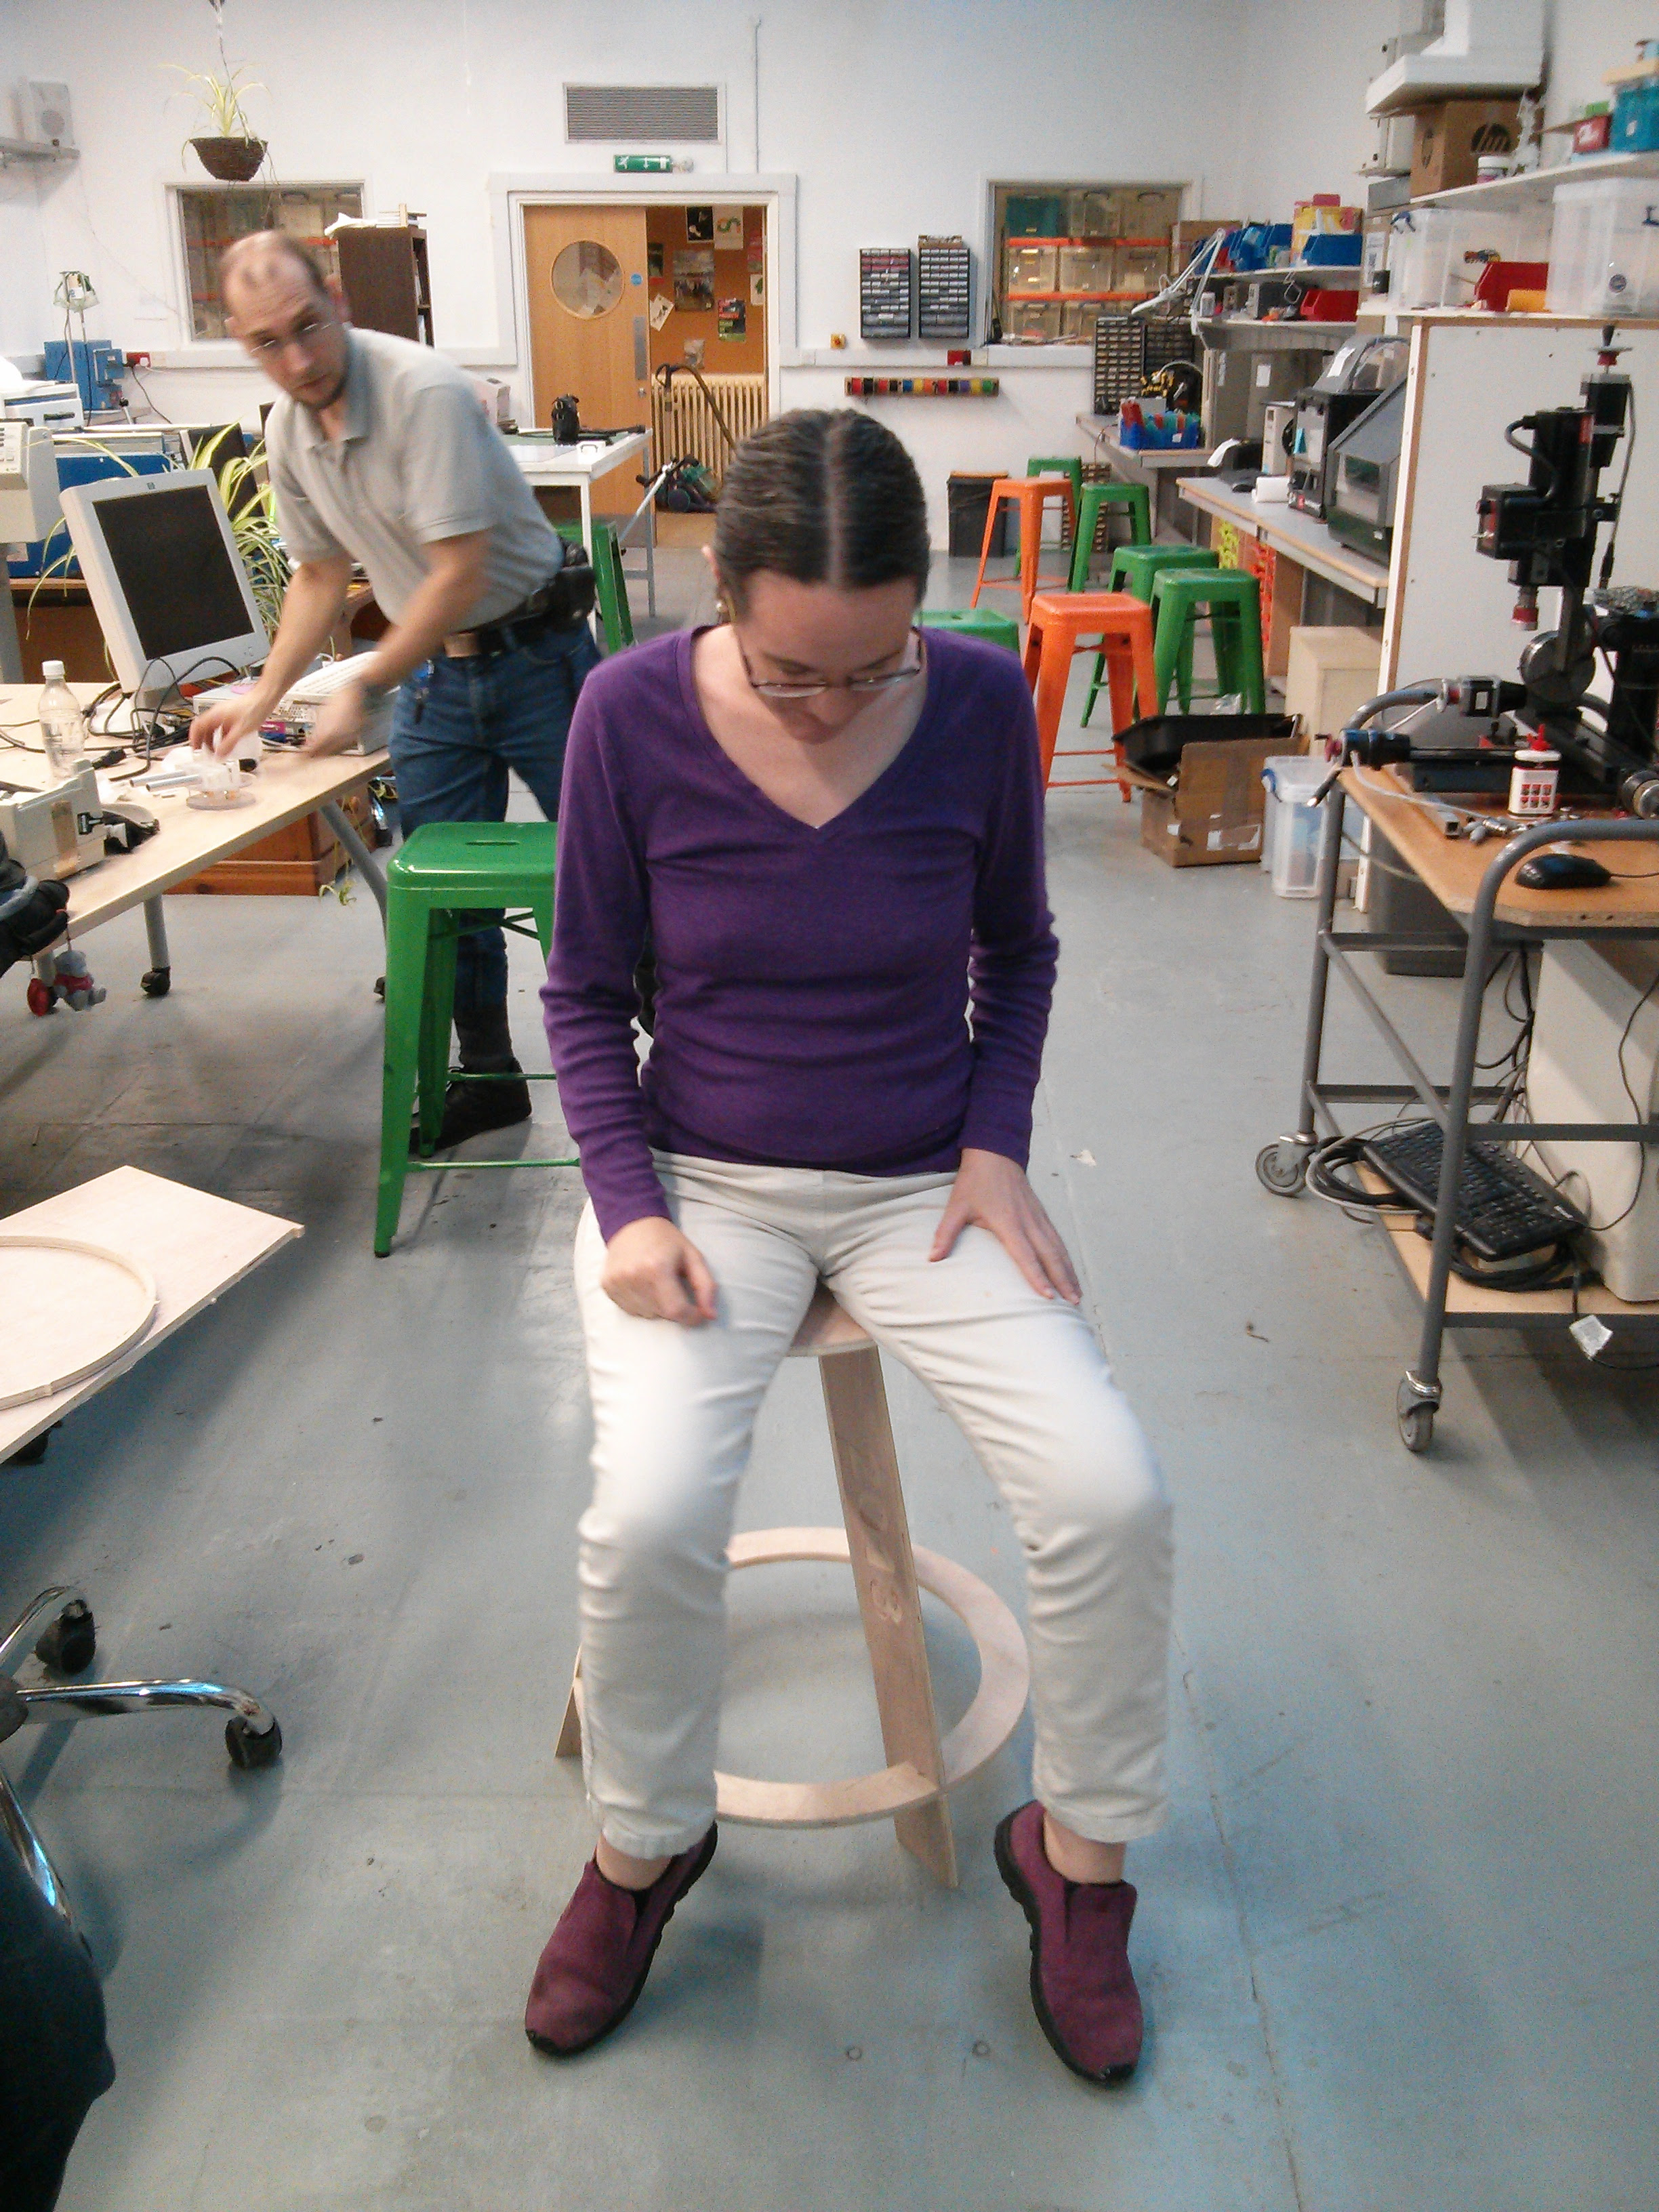 Anne Harrison volunteering to try the wobbly stool of doom